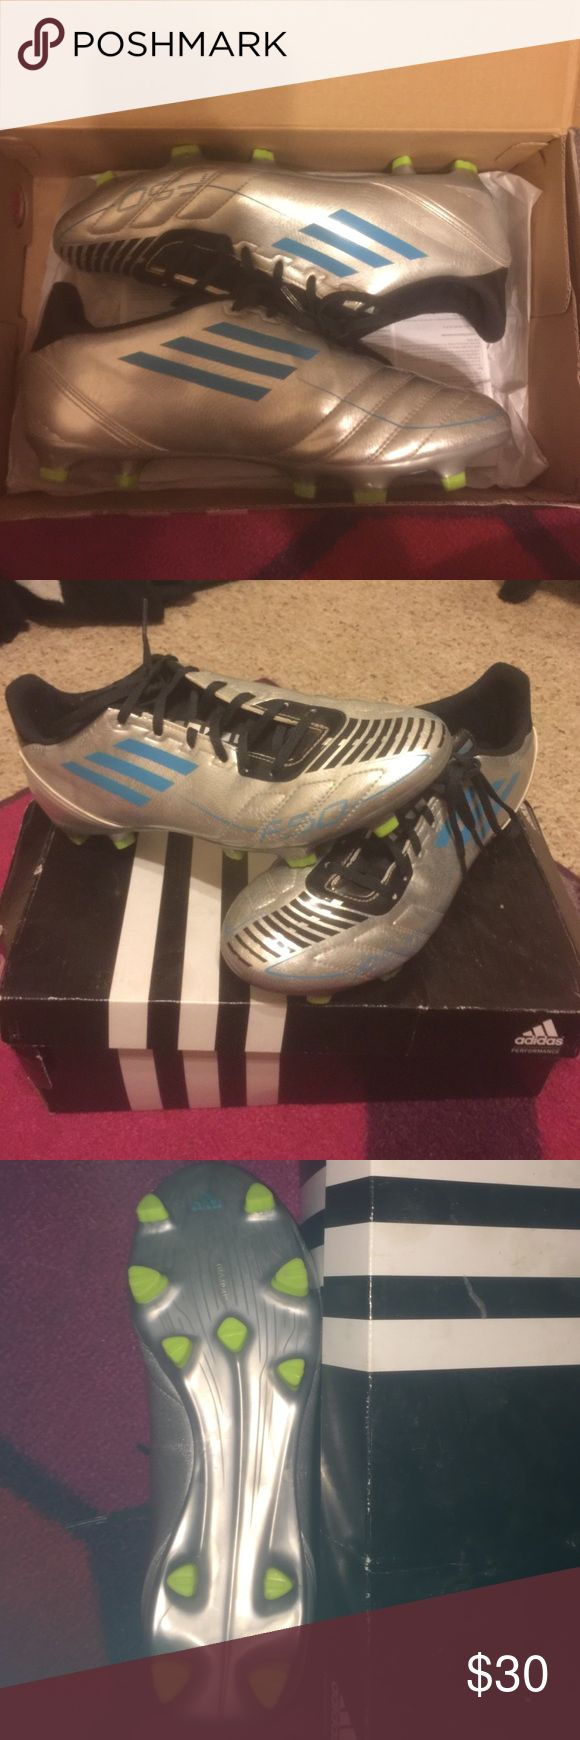 Silver and blue Adidas F10's TRX FG Silver and blue F10'S TRX FG. Women's size 9. Only worn once. Adidas Shoes Athletic Shoes